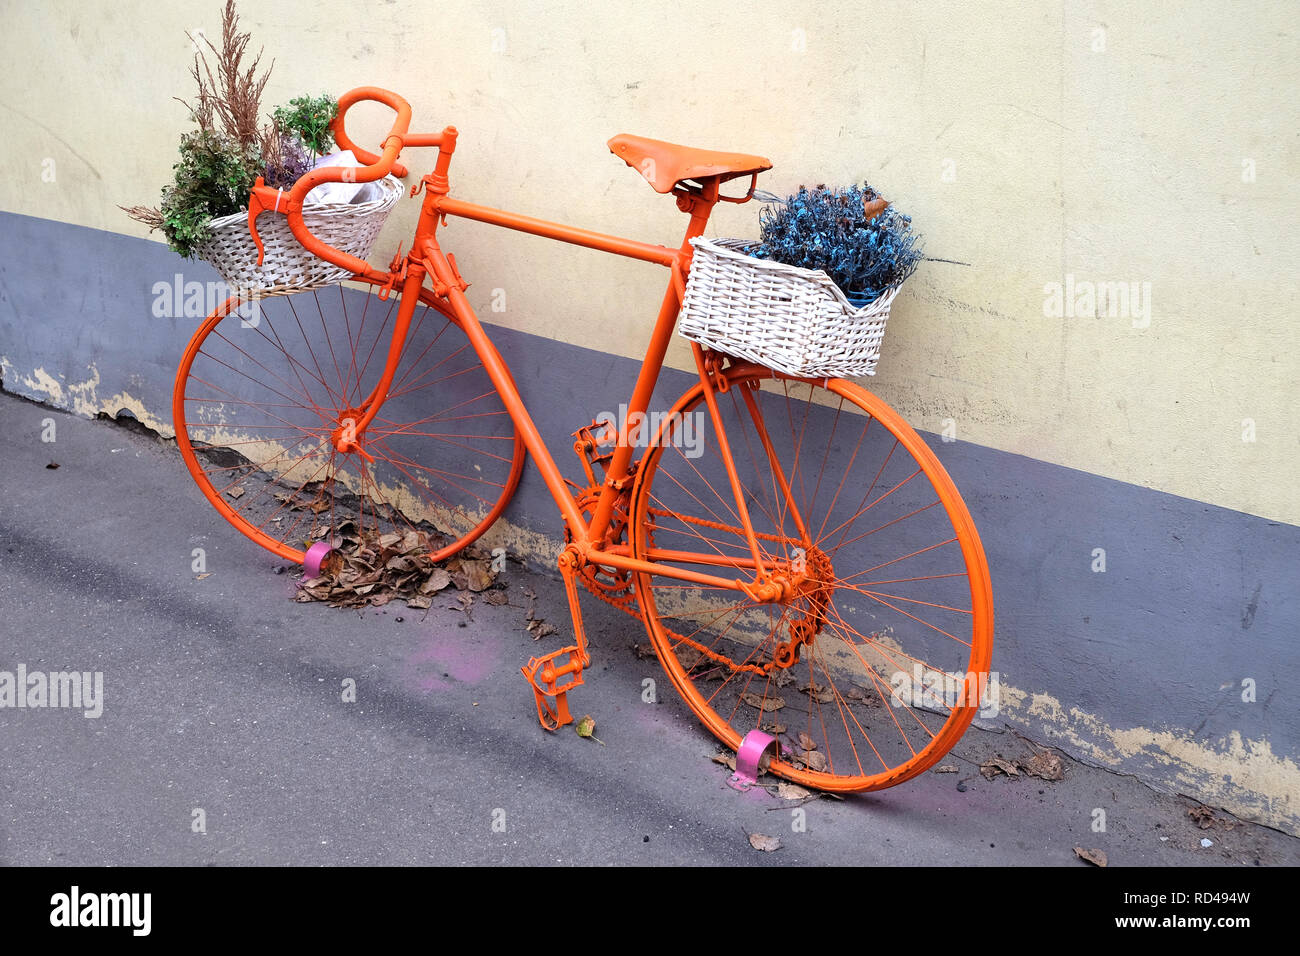 Retro style sport bike color orange with flower baskets as decoration outdoor near the wall side view - Stock Image